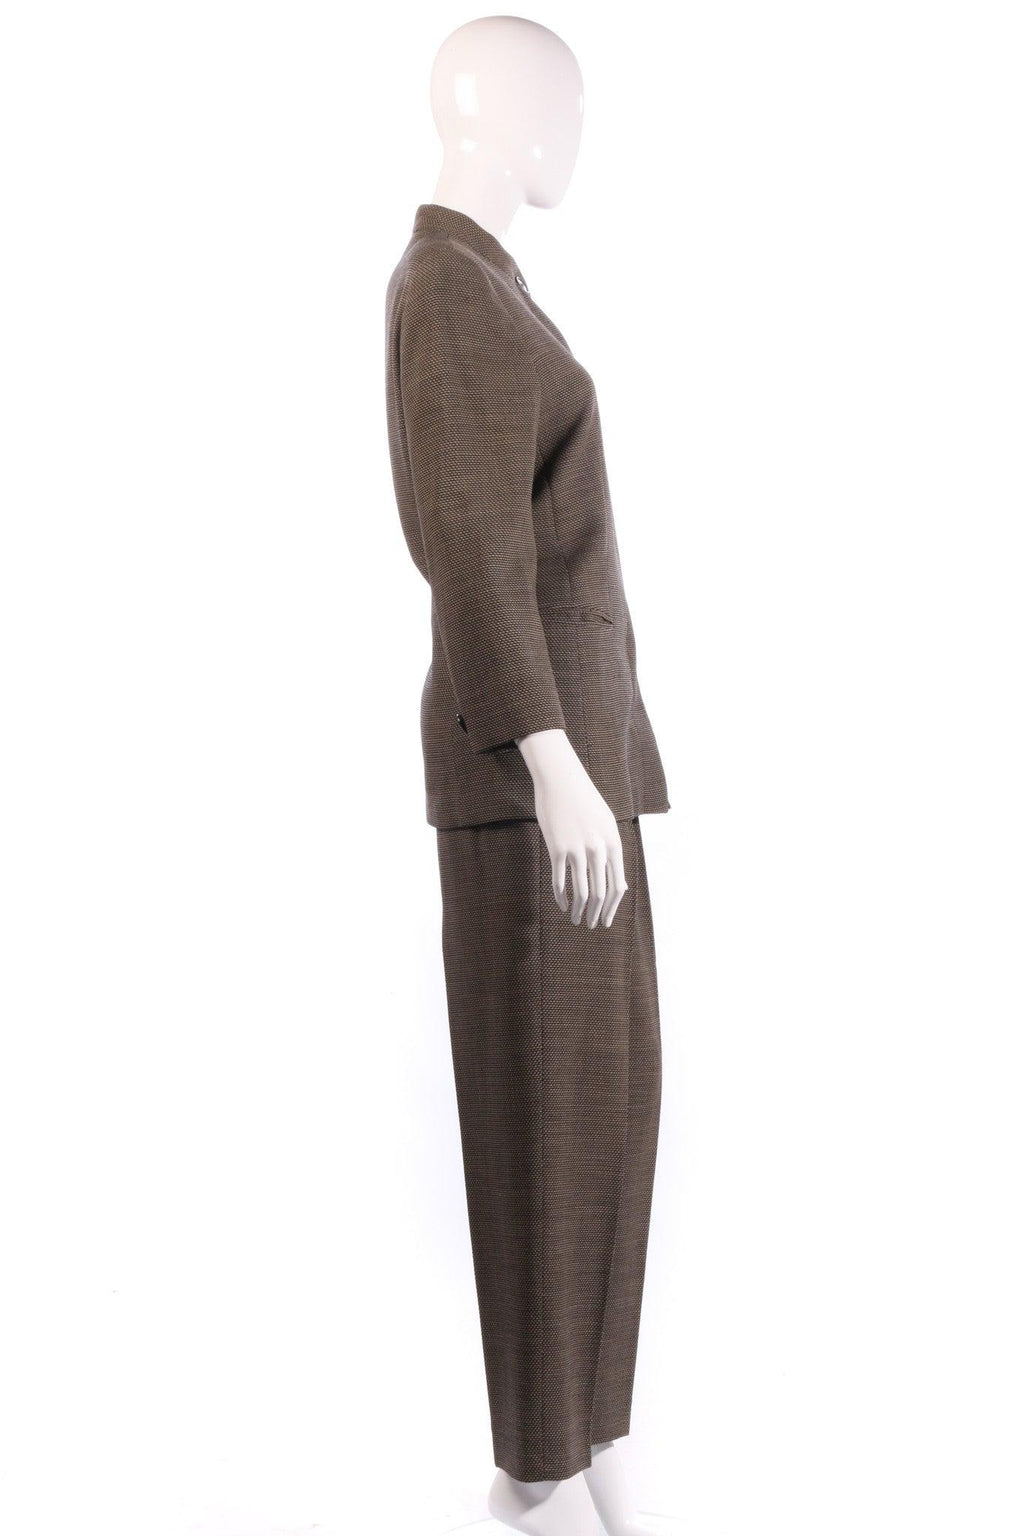 Max mara dark grey suit  side